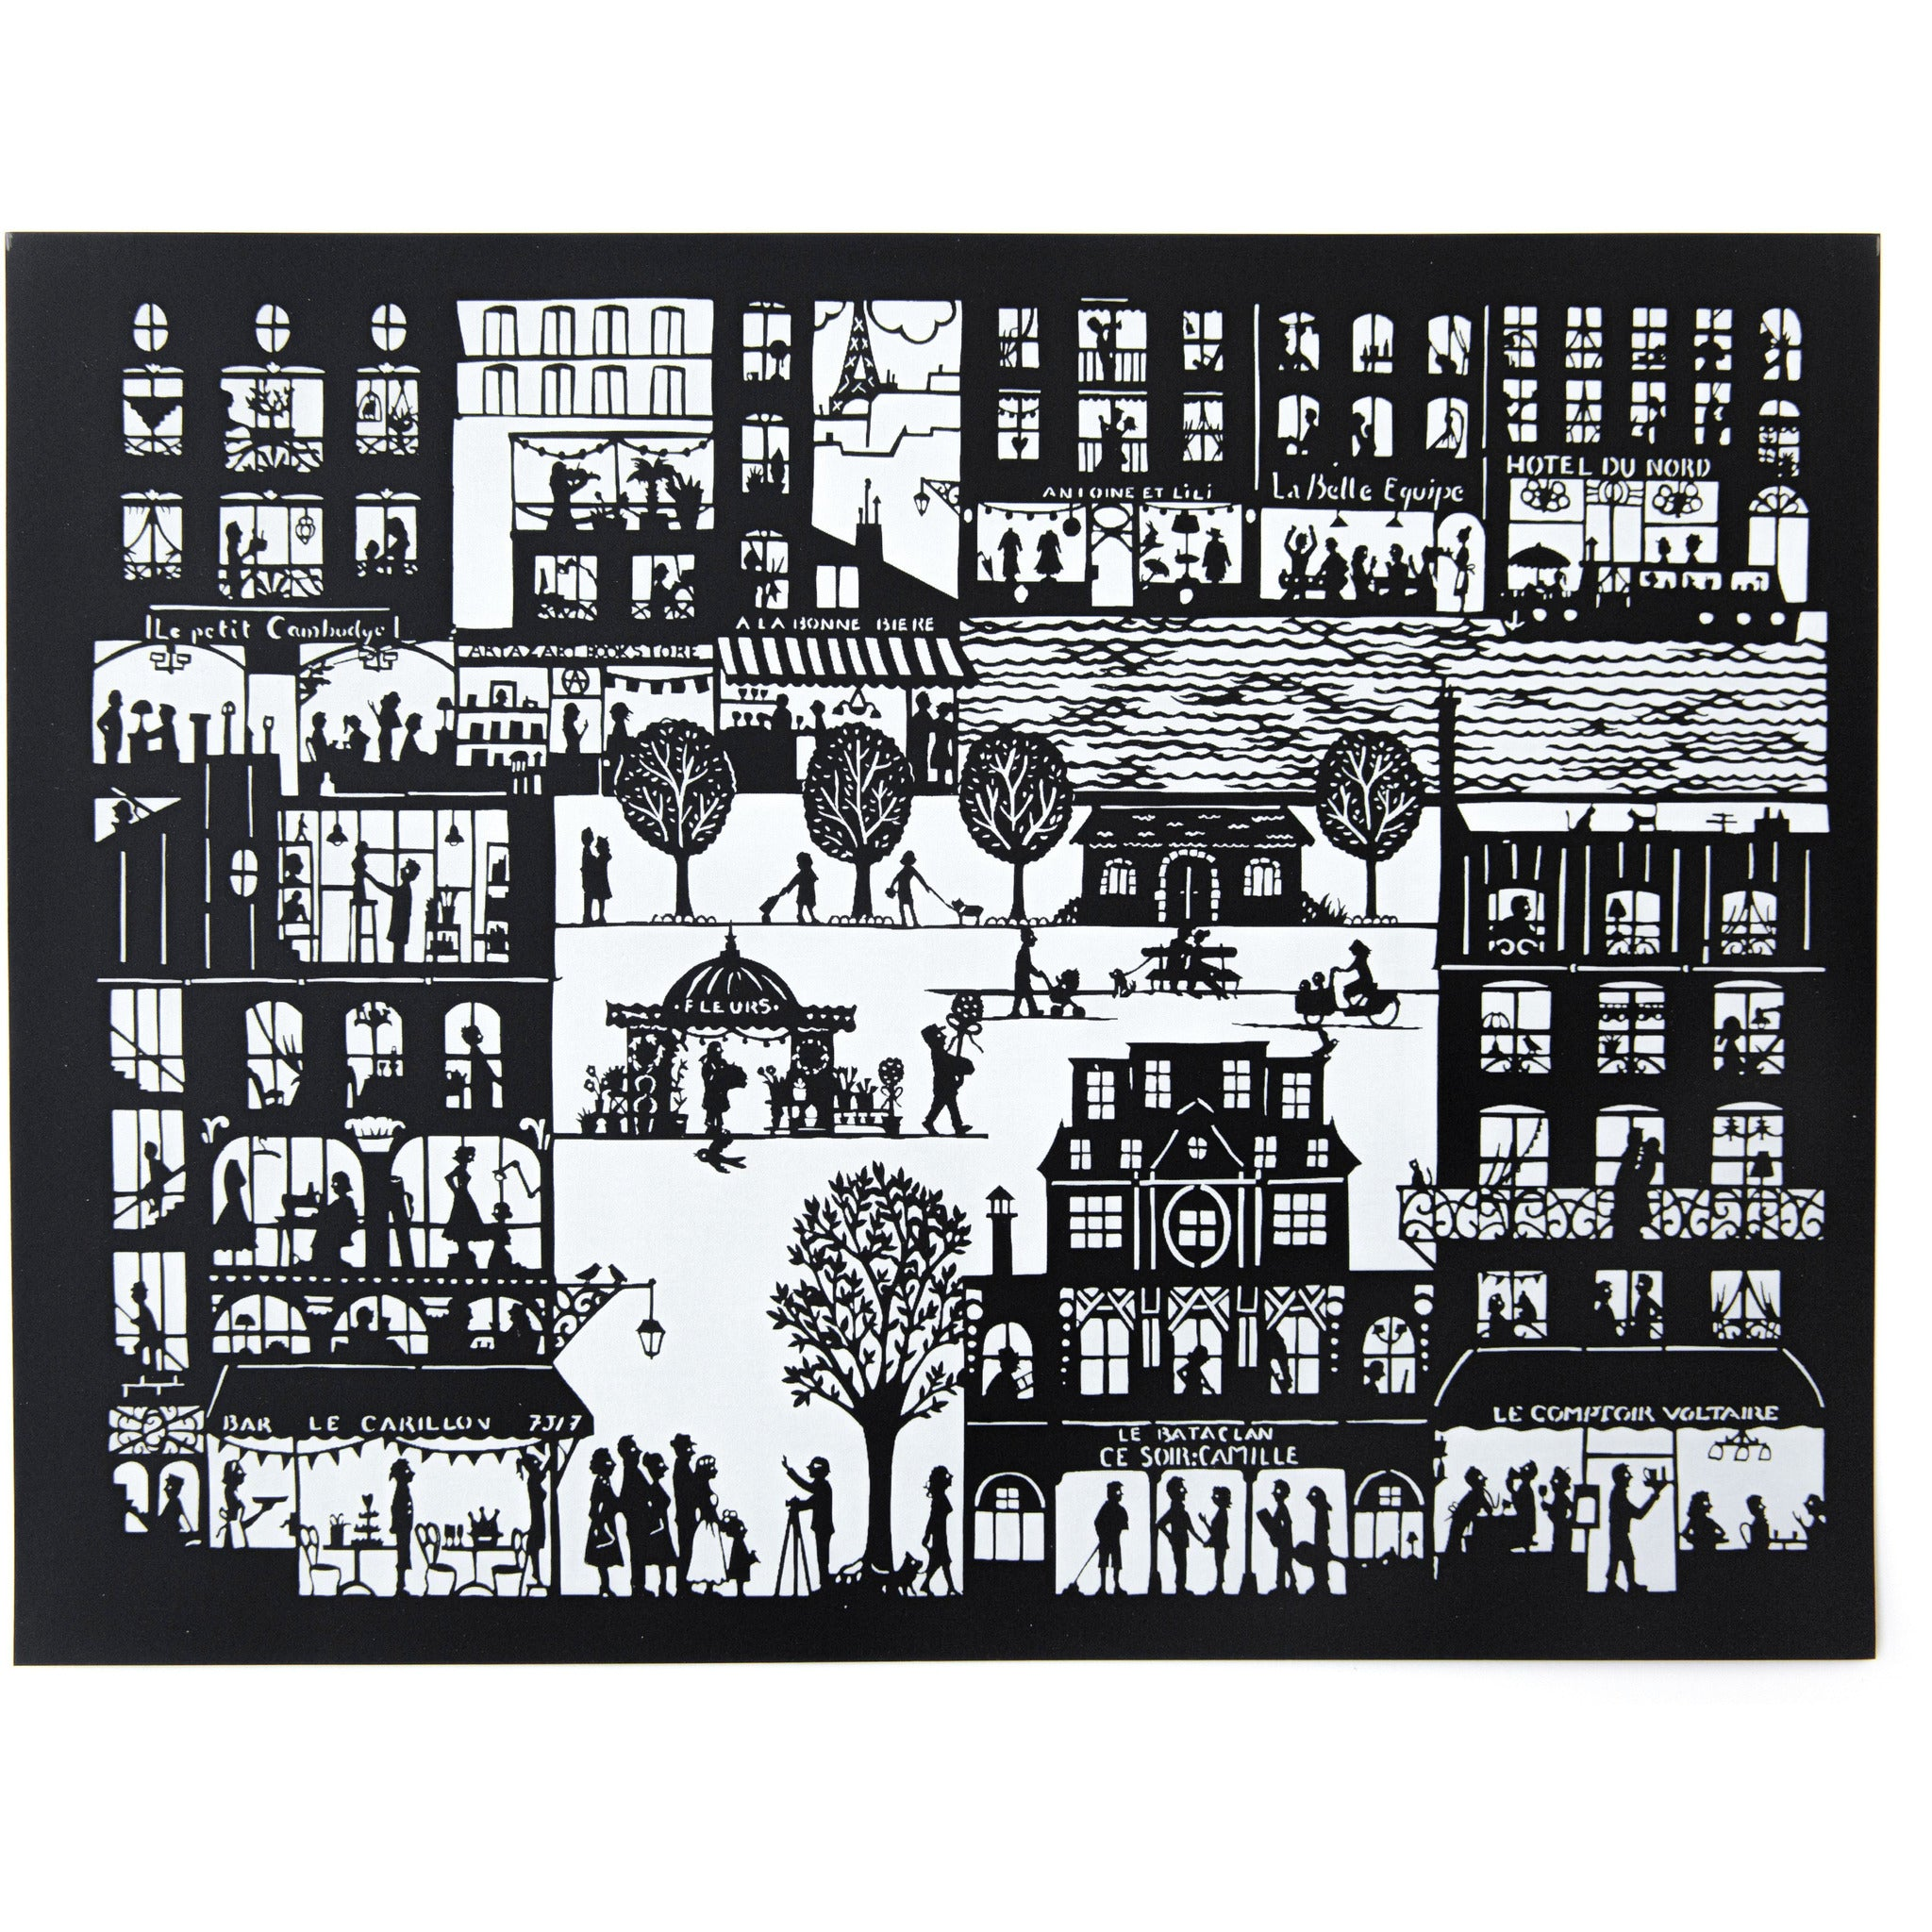 Paris 1 Art Print by Stephanie Miguet - The First Snow